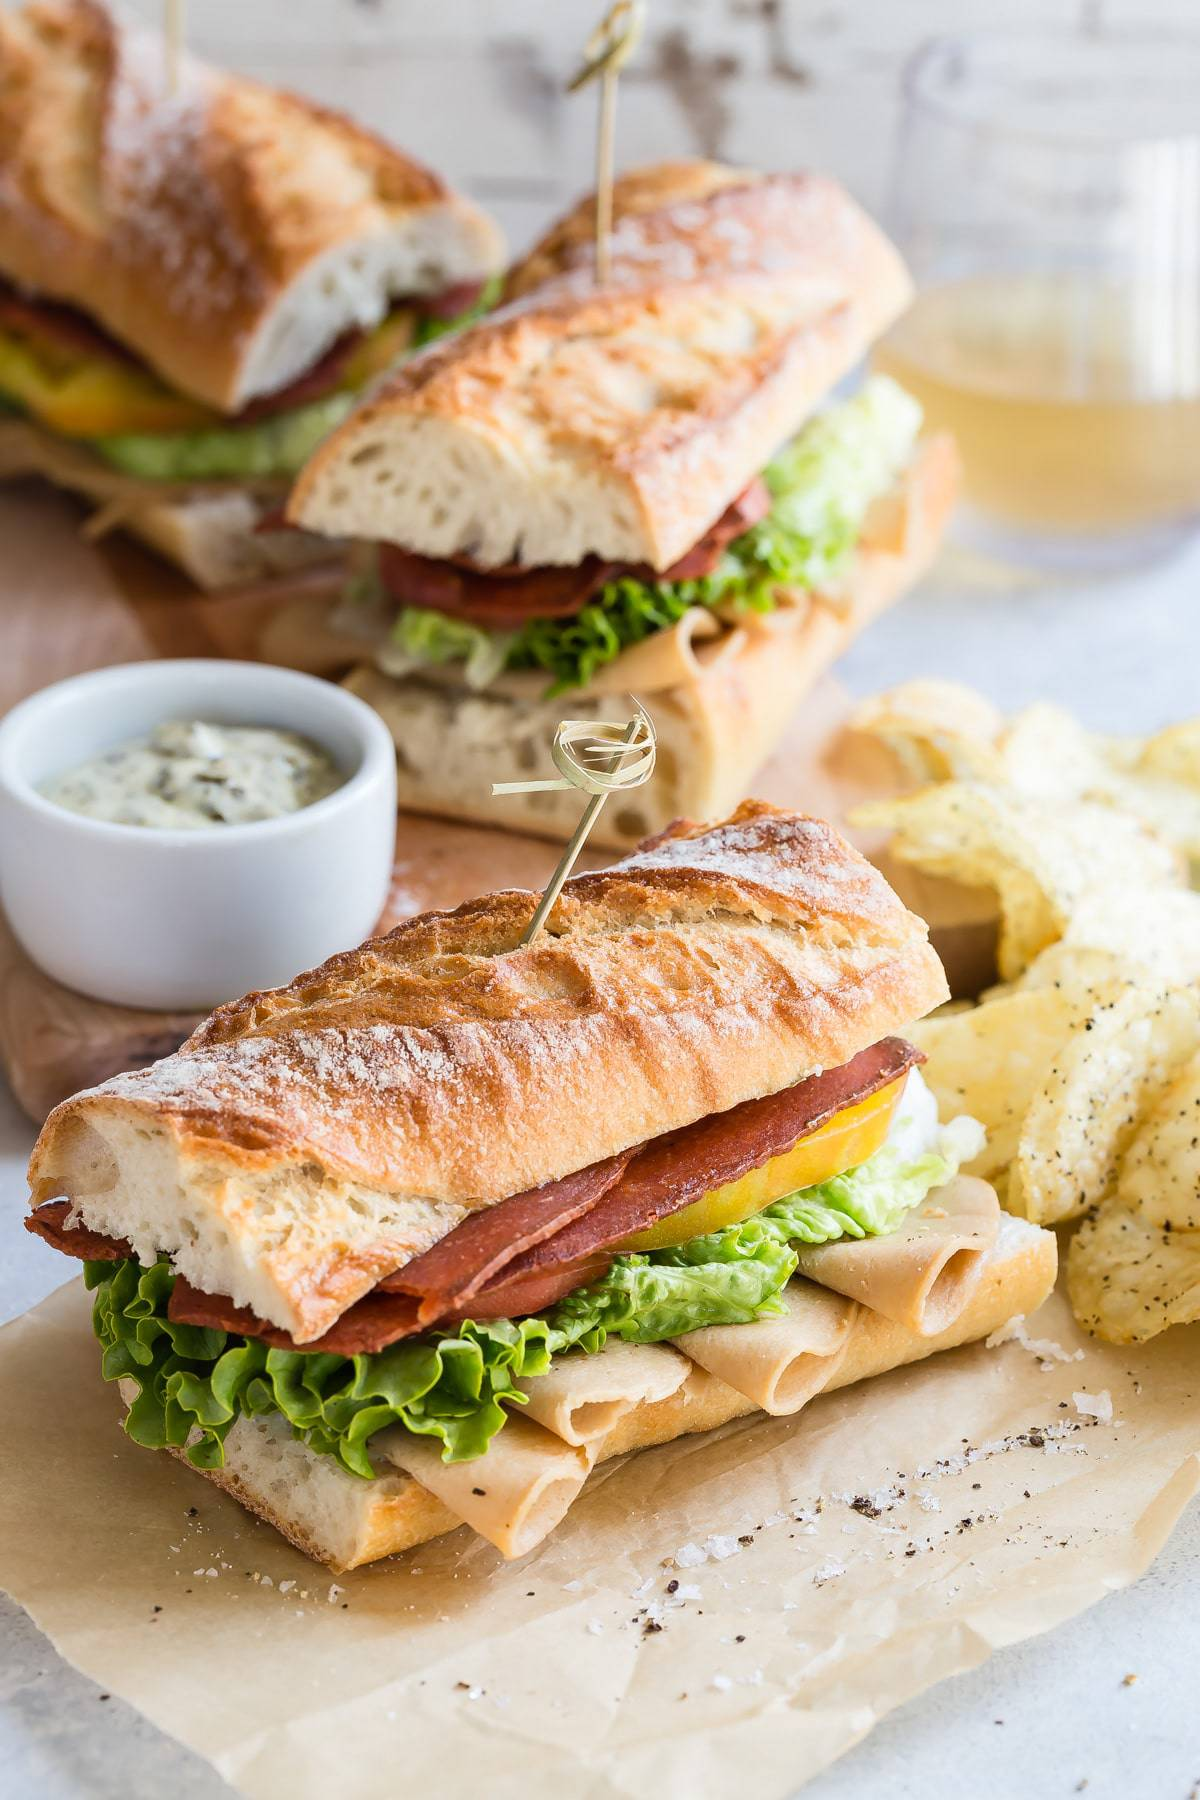 A traditional club sandwich with vegetarian bacon and turkey.